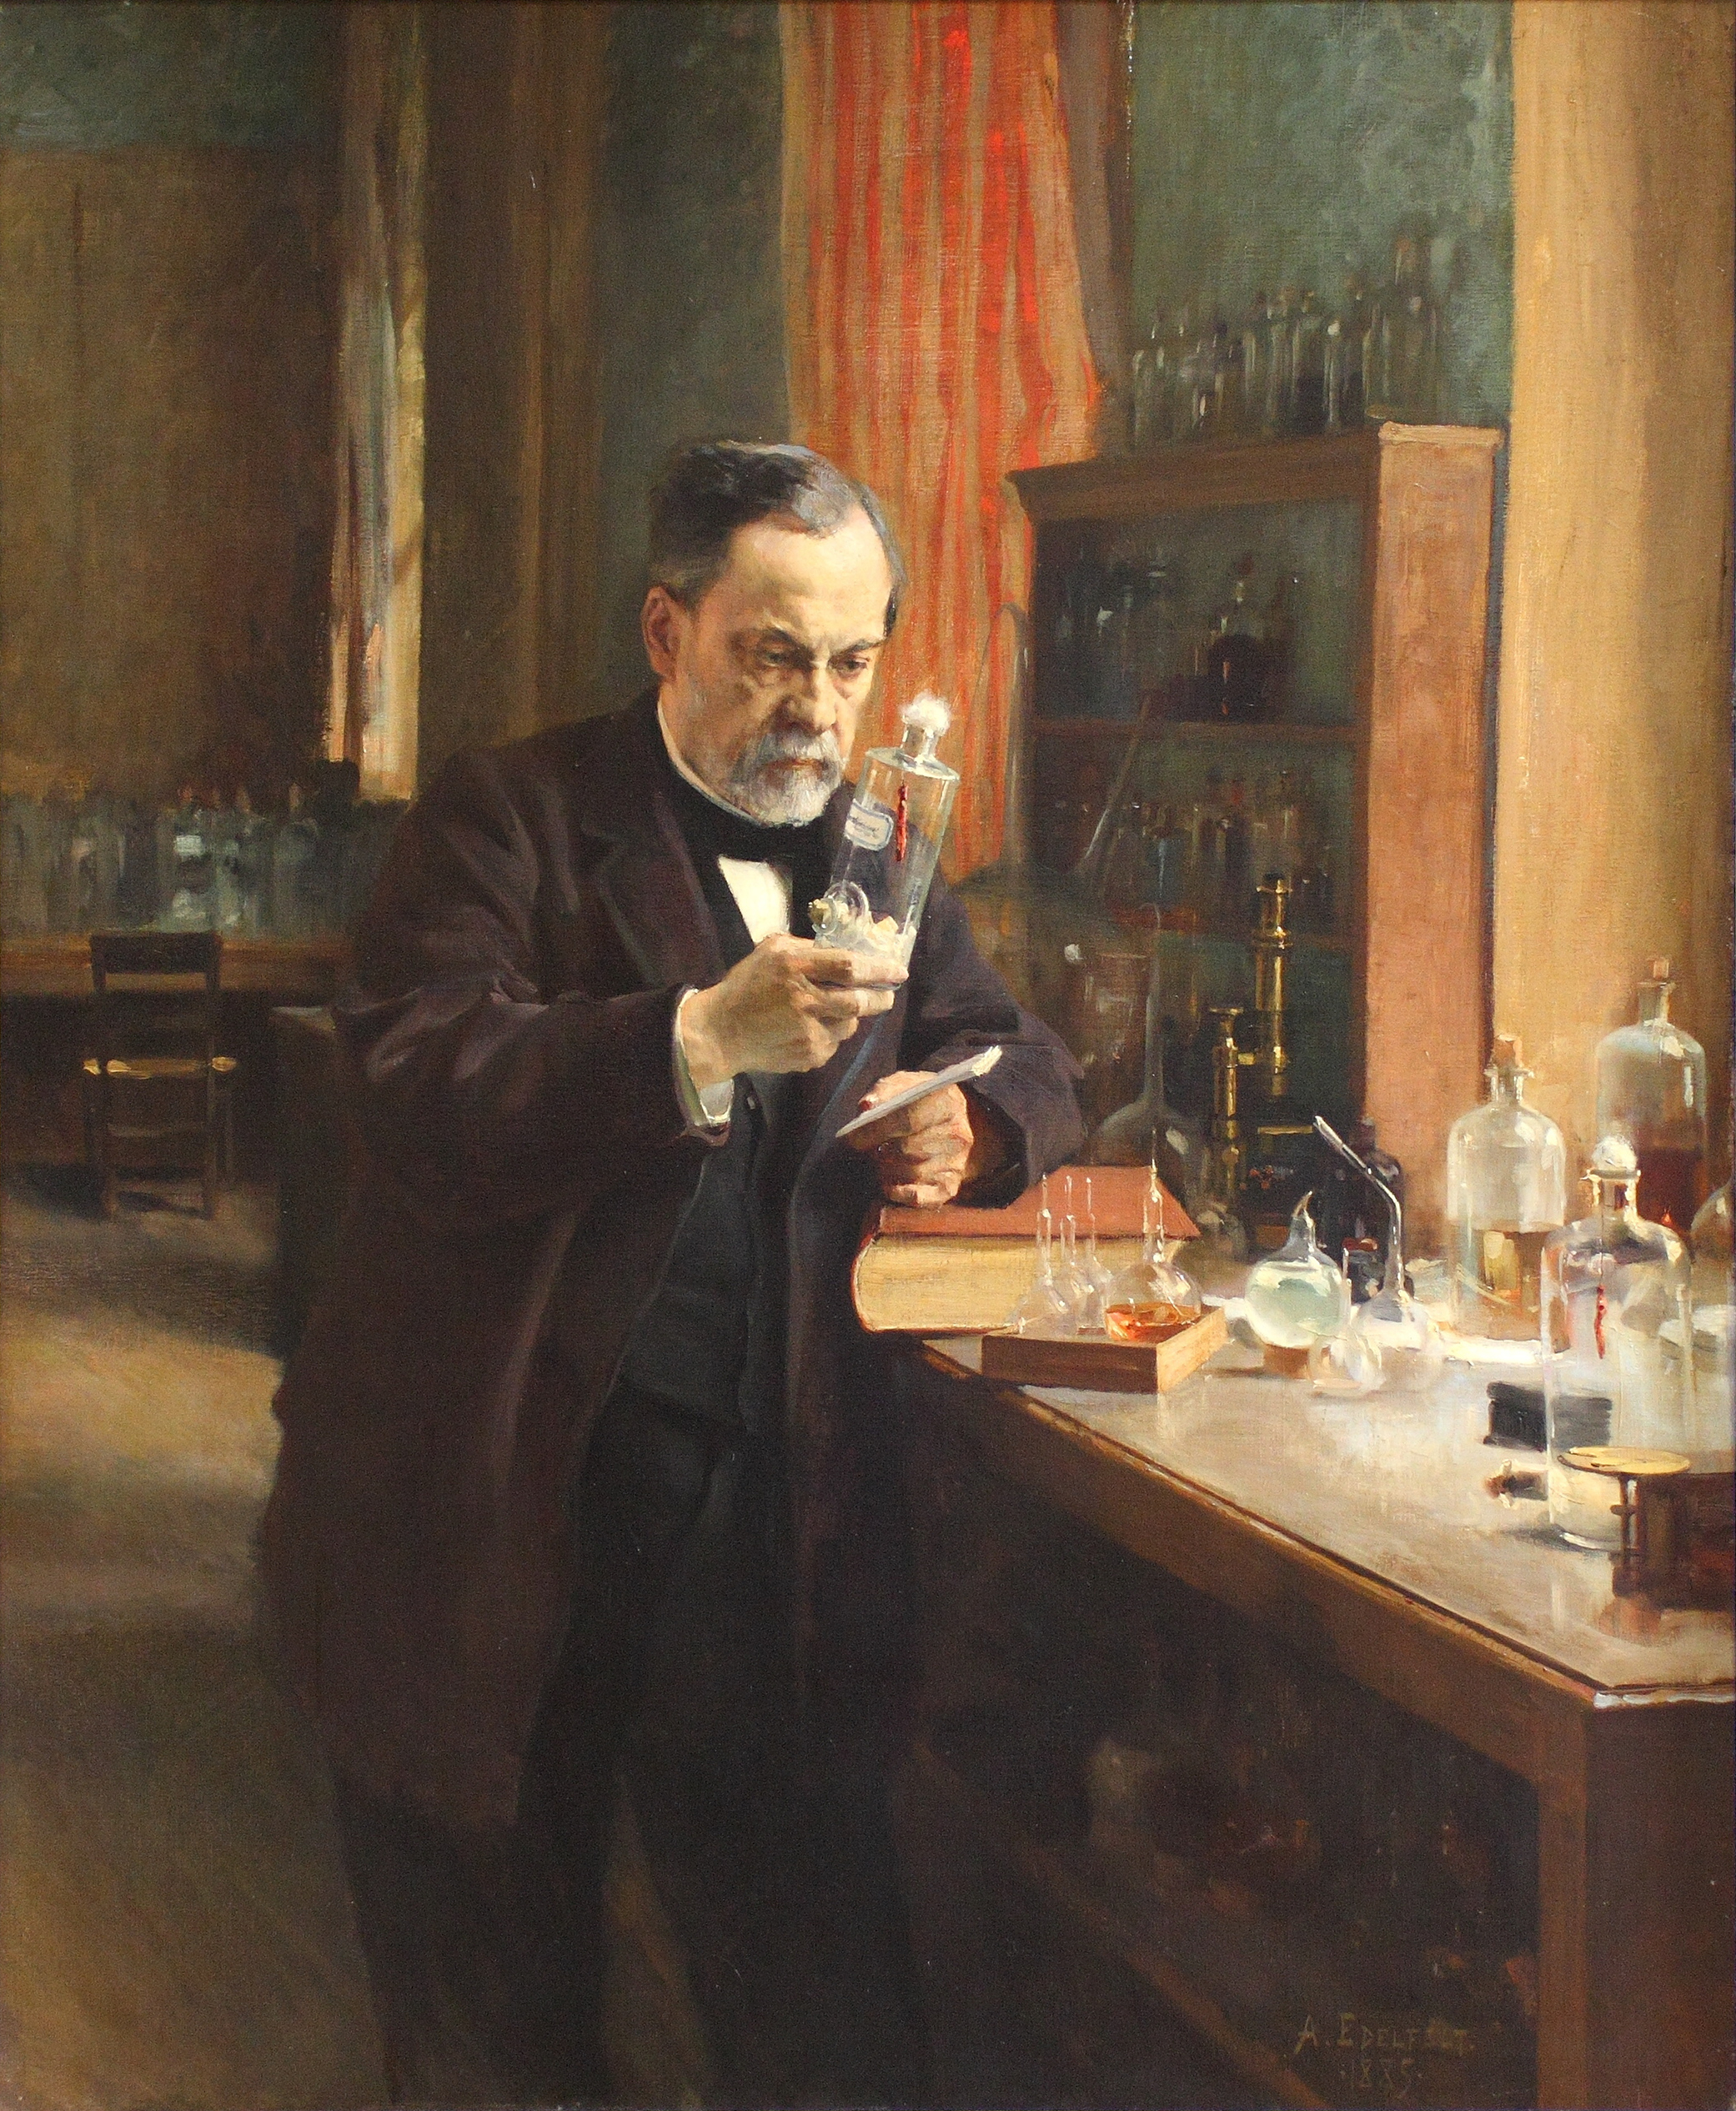 https://upload.wikimedia.org/wikipedia/commons/3/3c/Albert_Edelfelt_-_Louis_Pasteur_-_1885.jpg